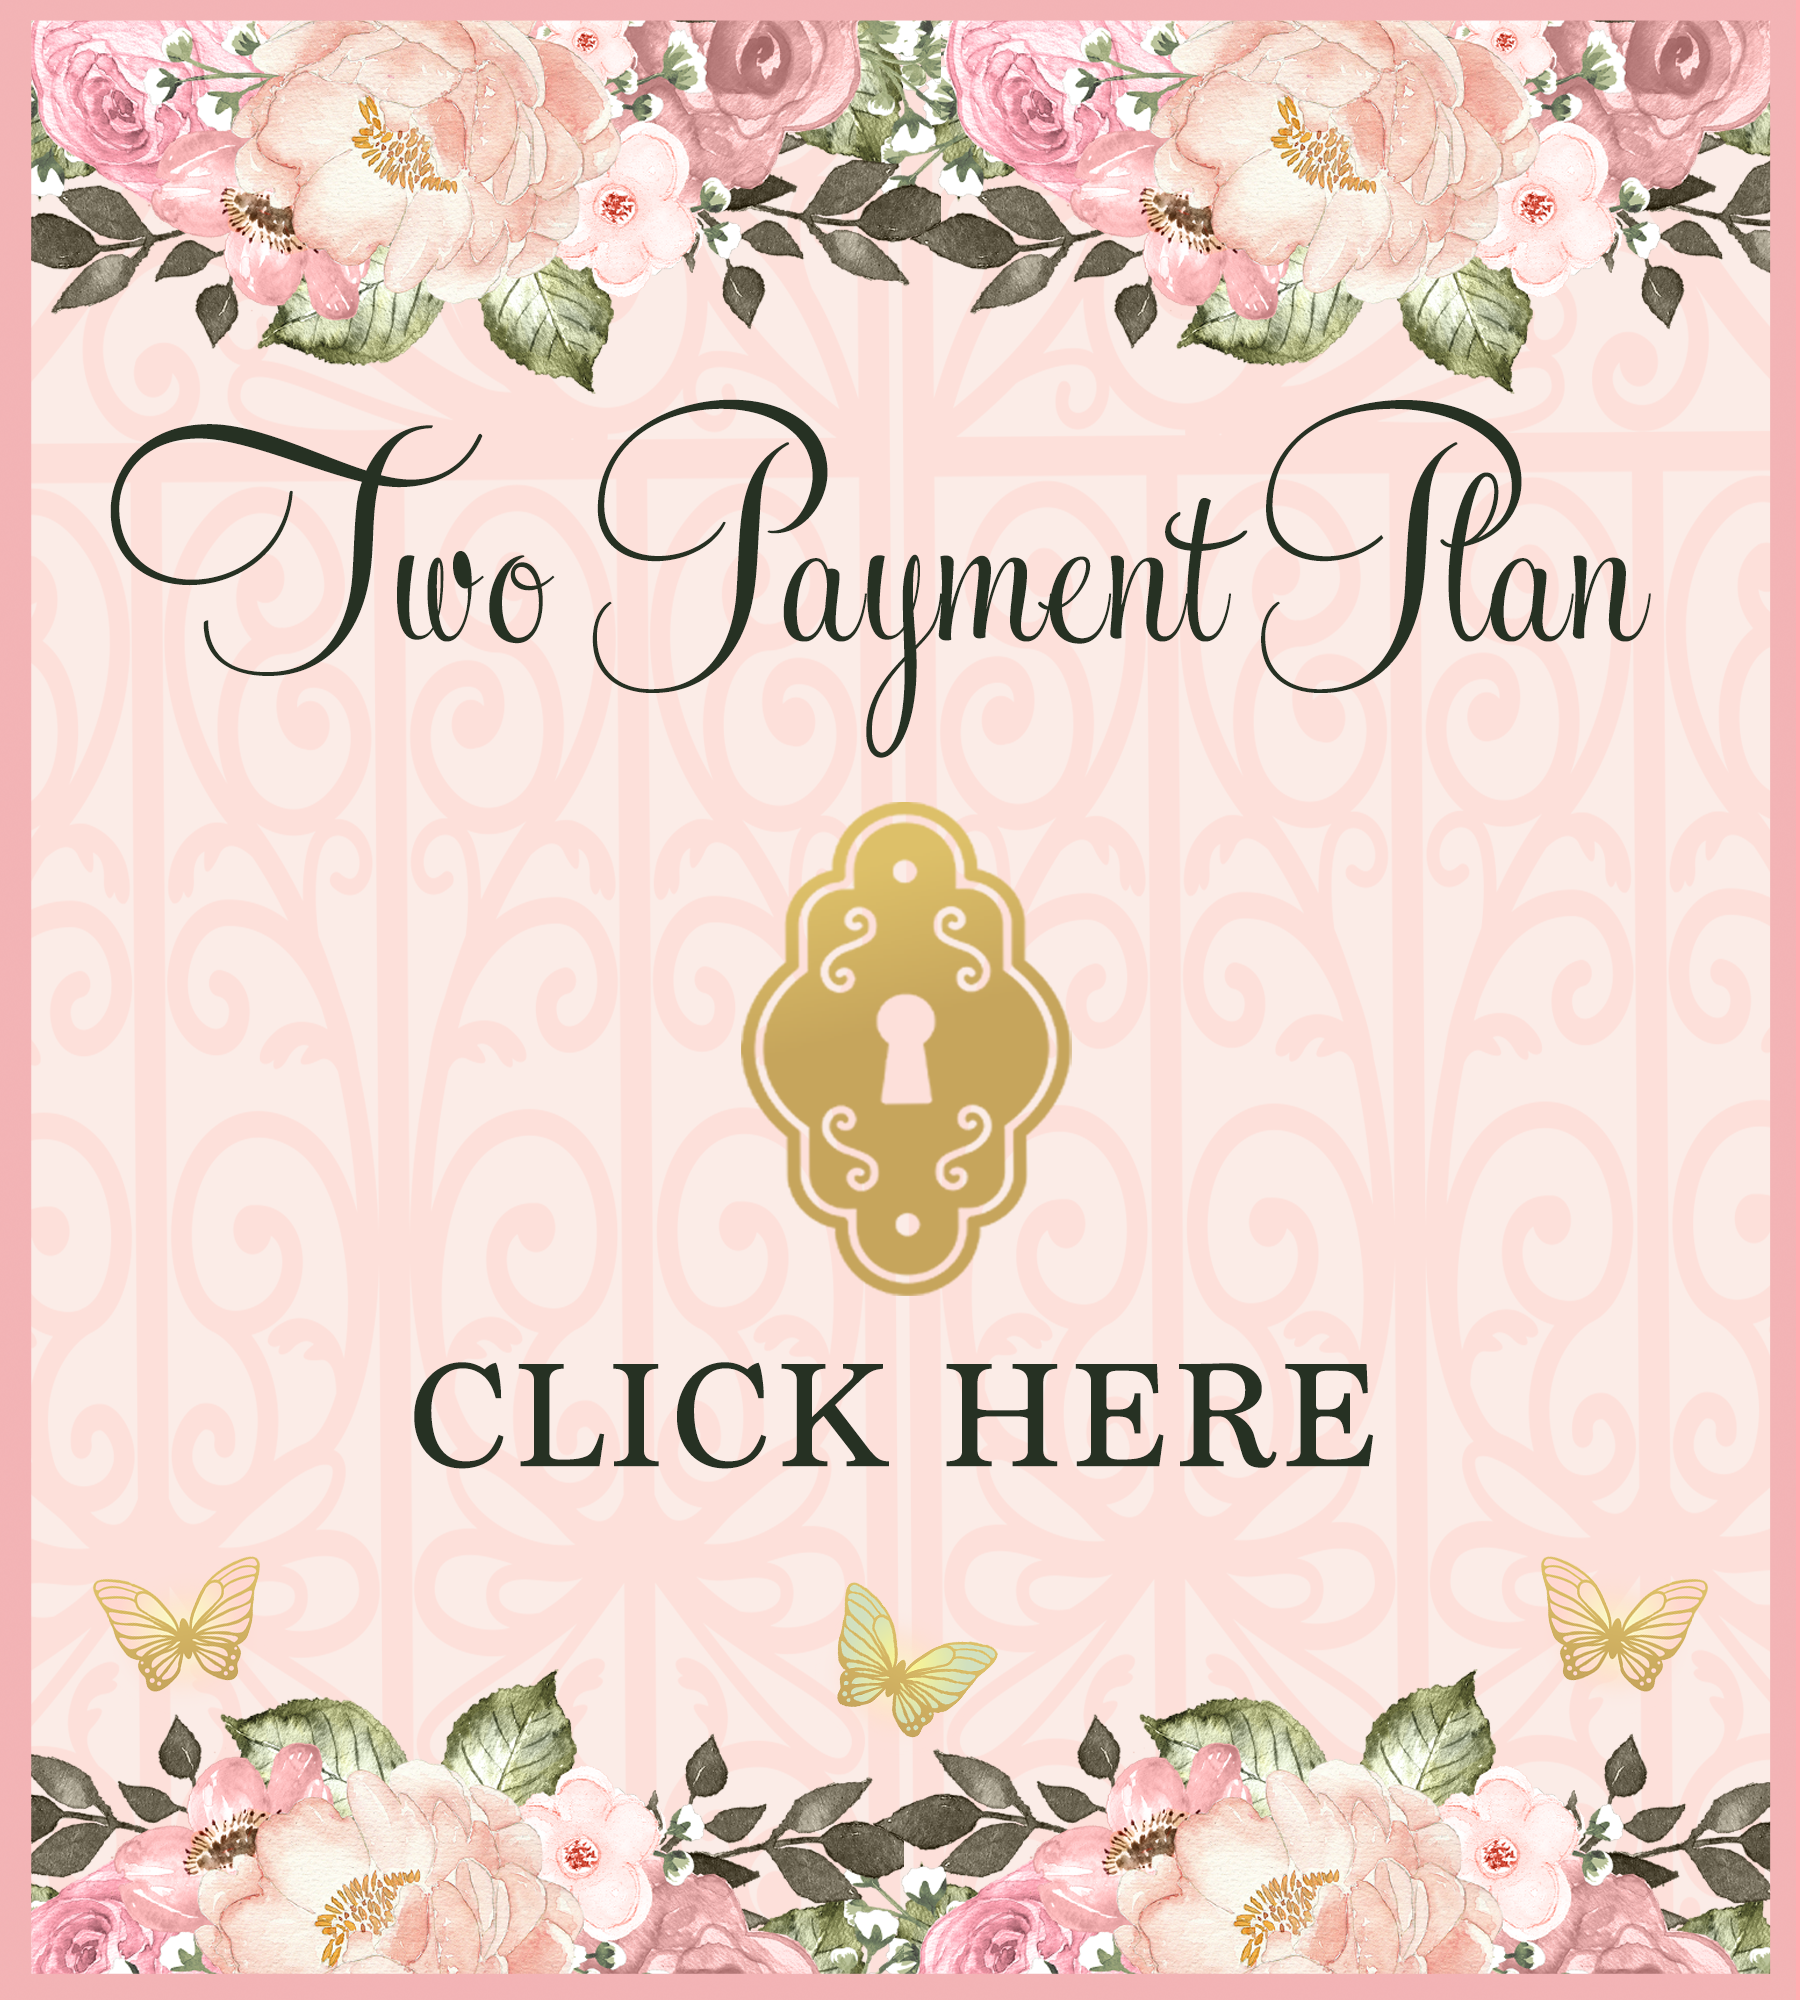 A Secret Garden Affaire (Second Payment on Two Payment Plan)